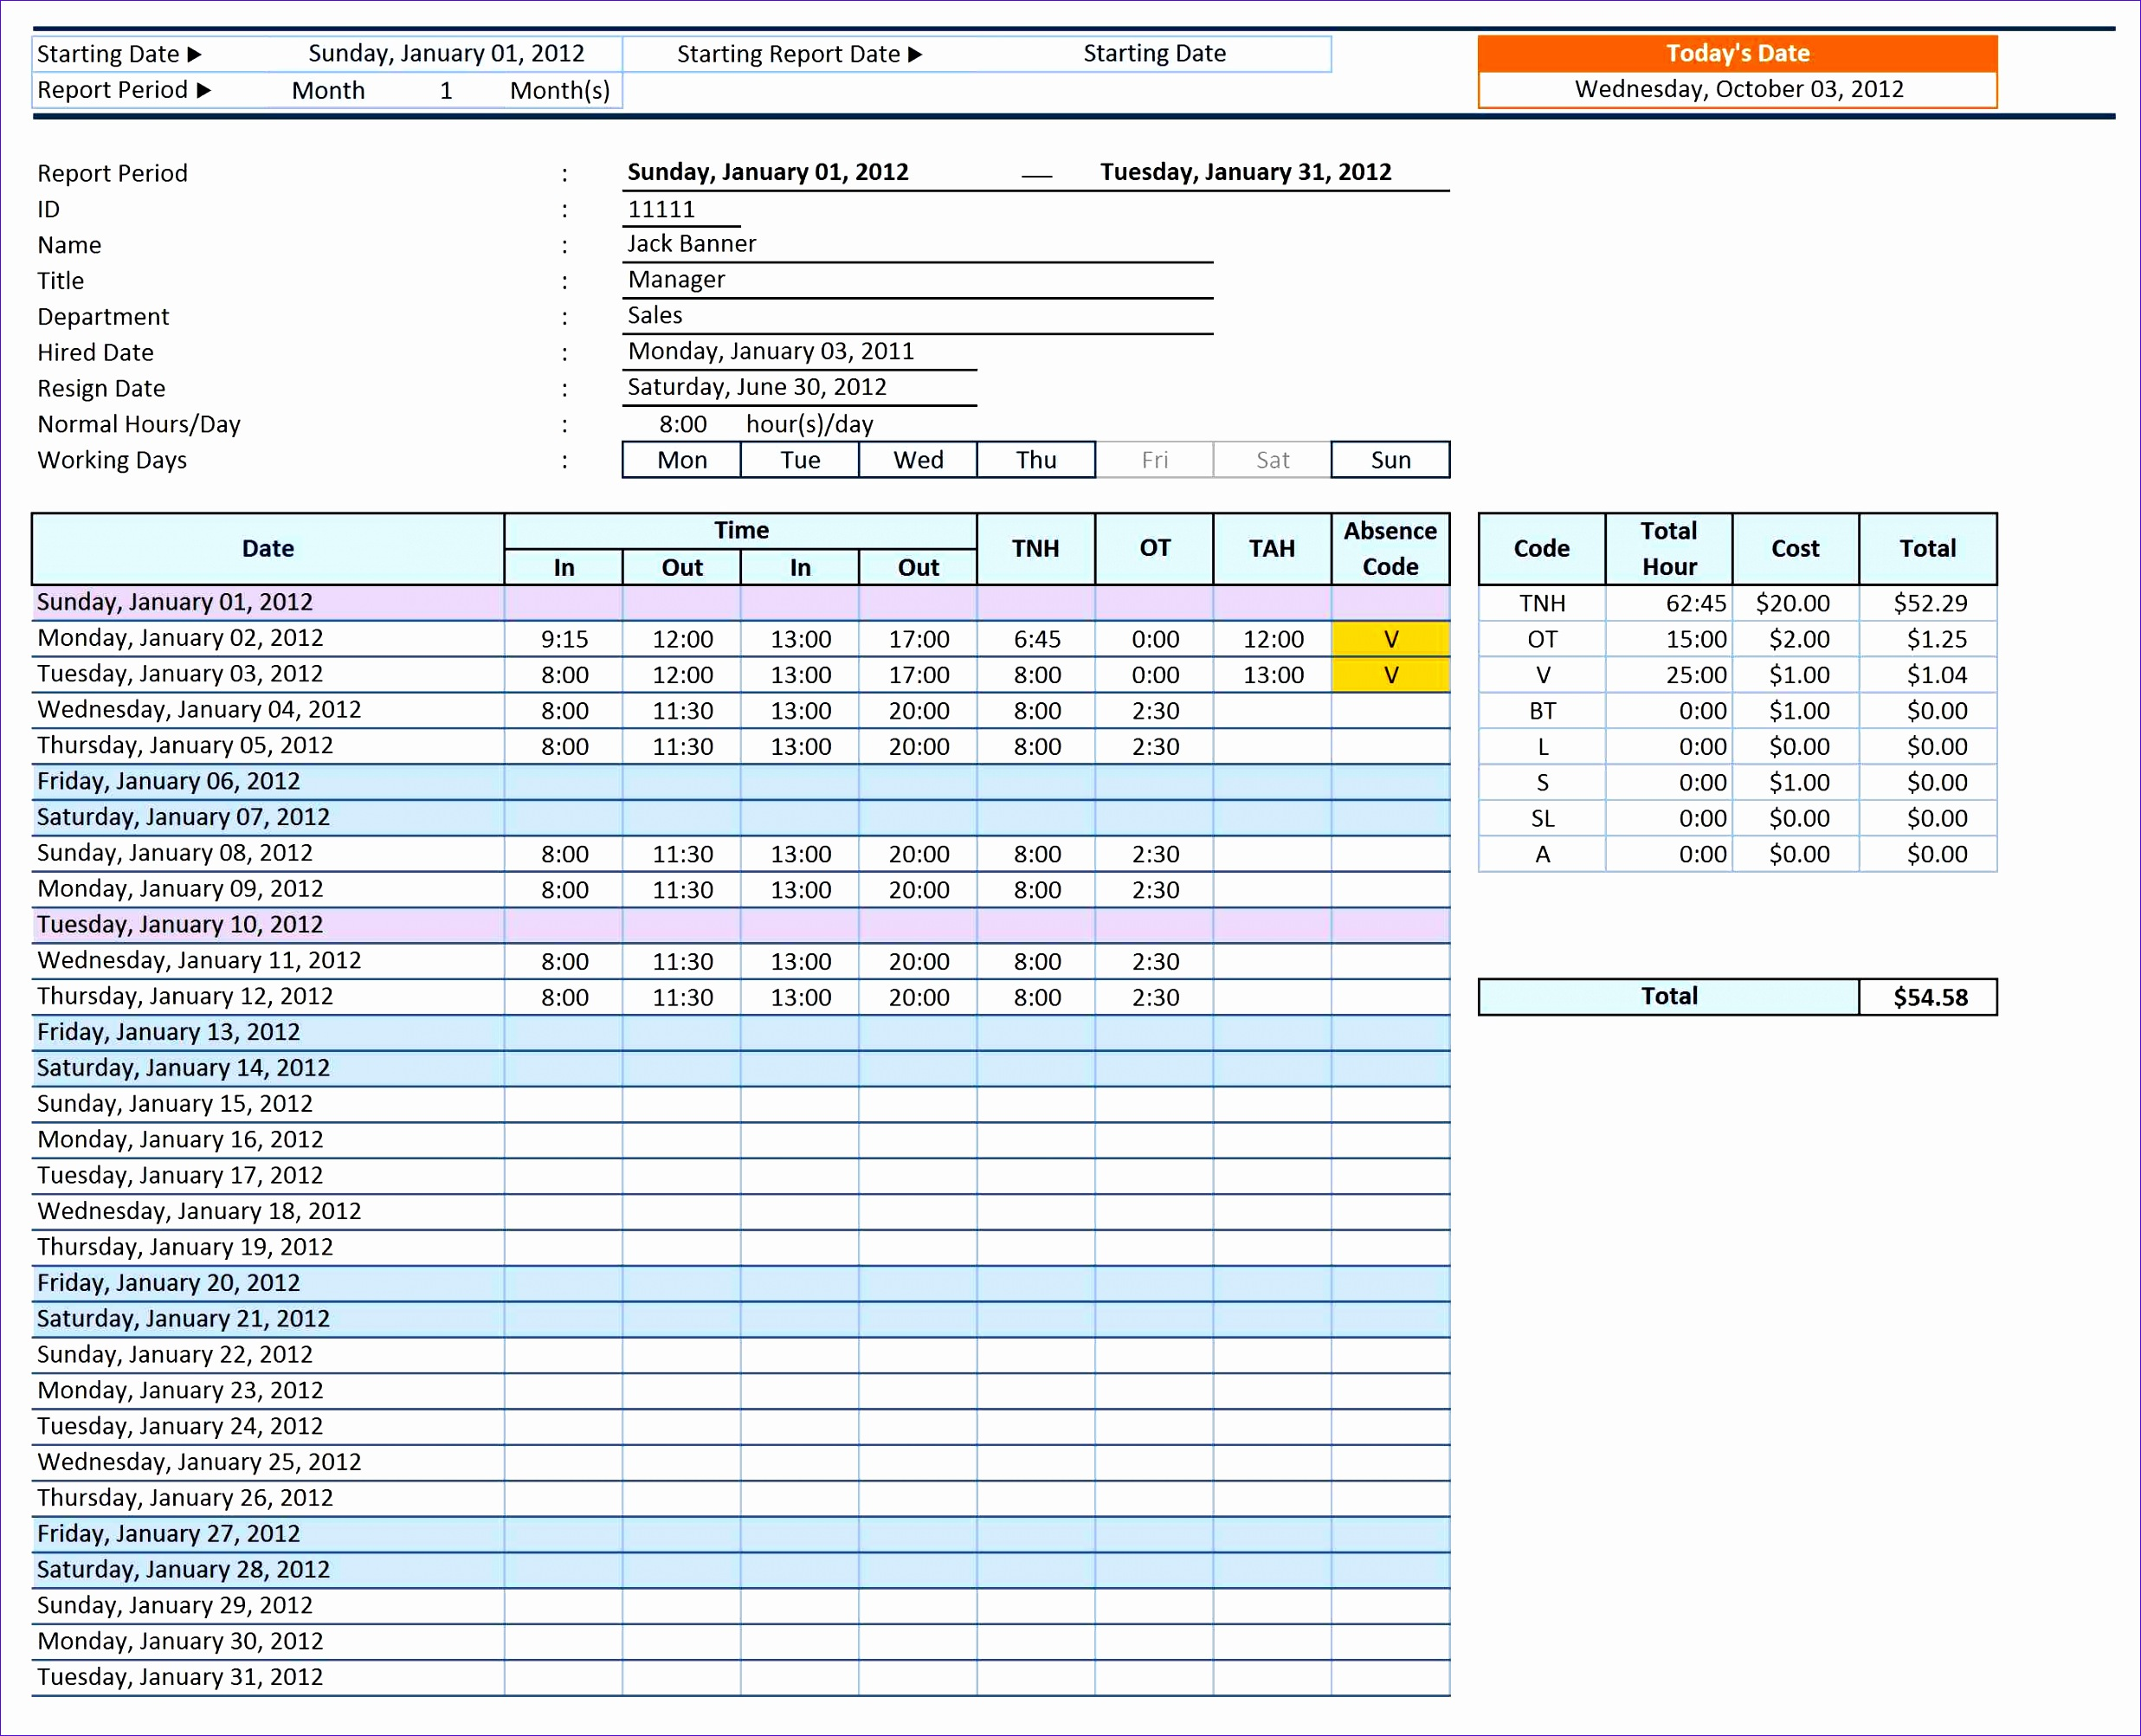 Excel Weekly Timesheet Template with formulas M5xzw Unique Employee Time Sheet Manager organized Entrepreneur